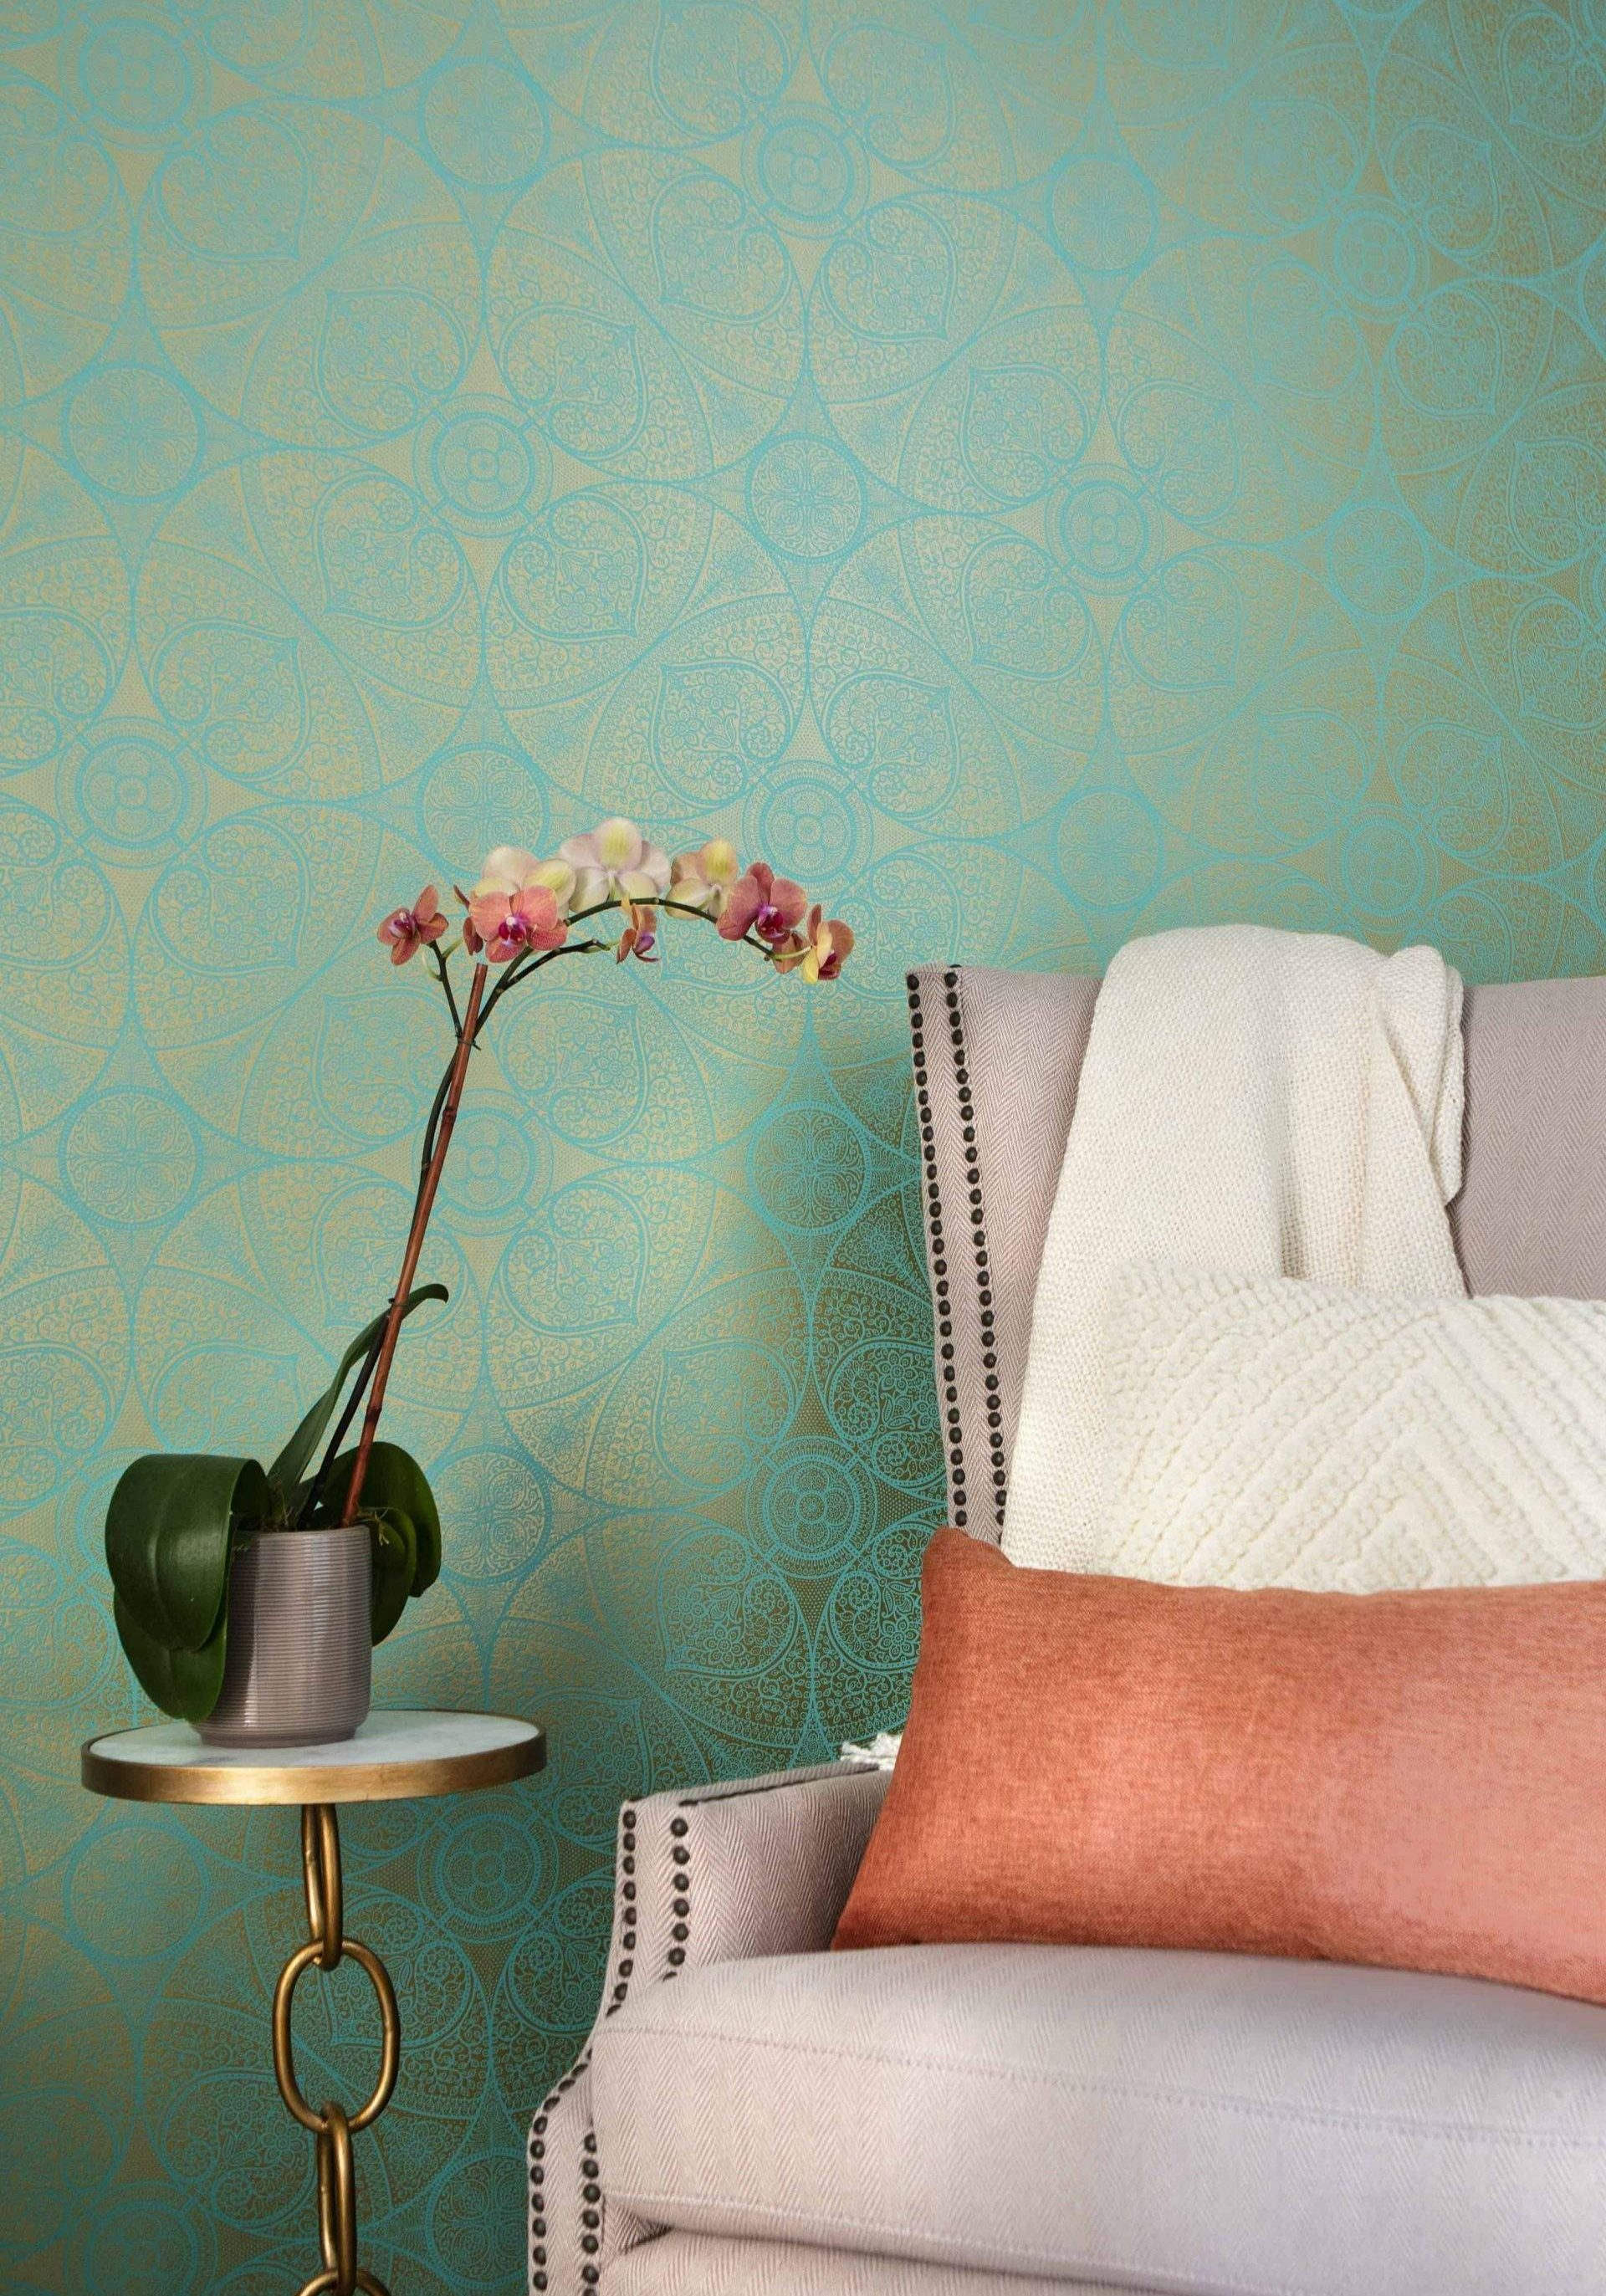 Home Interior Design, Green and Gold Wallpaper with Pink Chair, Etch Interior Design, Austin, Texas